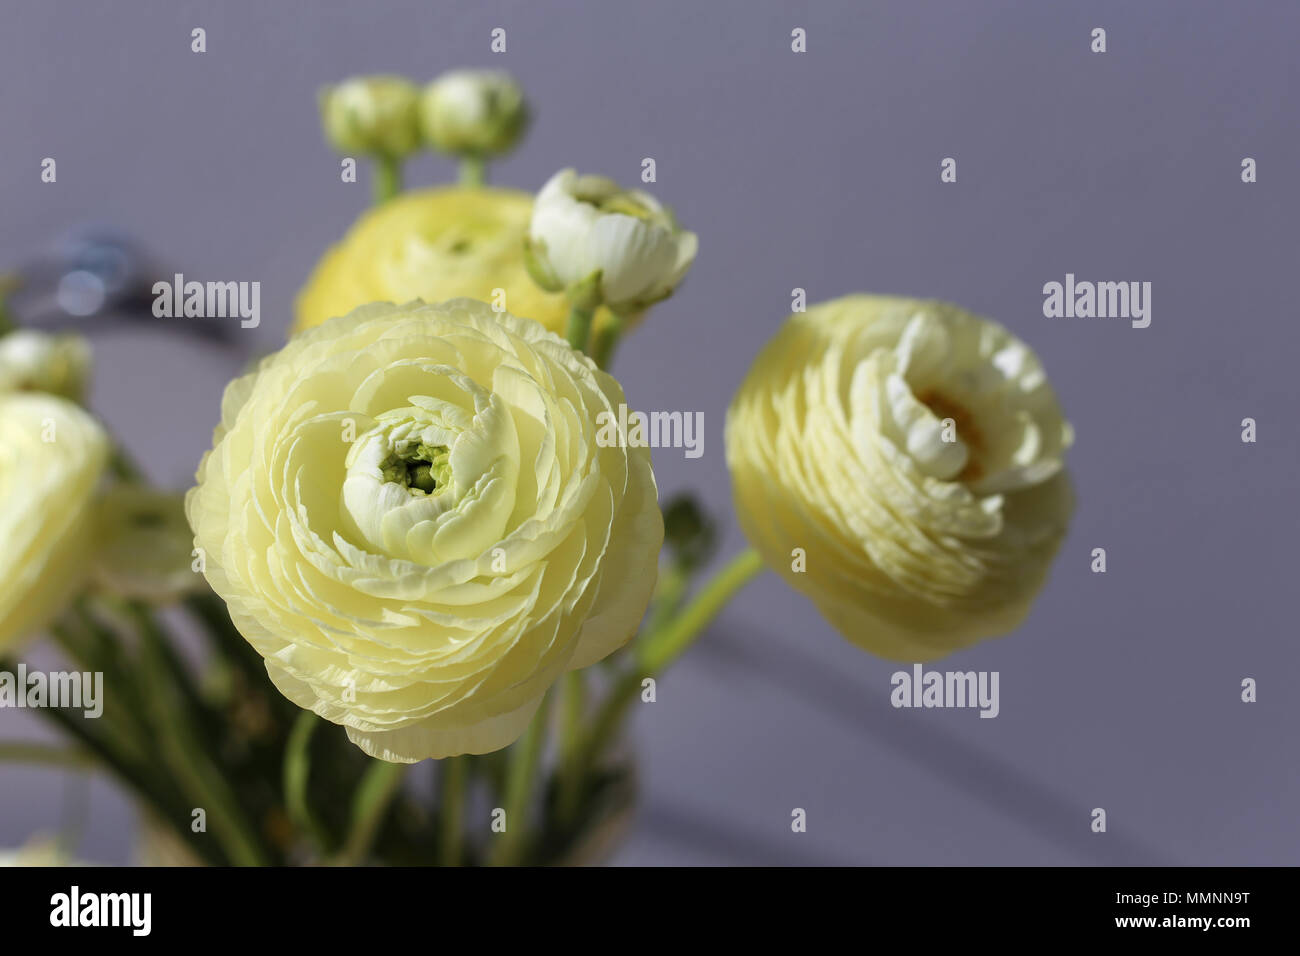 Natural white light yellow flowers a pretty closeup photo with natural white light yellow flowers a pretty closeup photo with multiple flowers in it grey background mightylinksfo